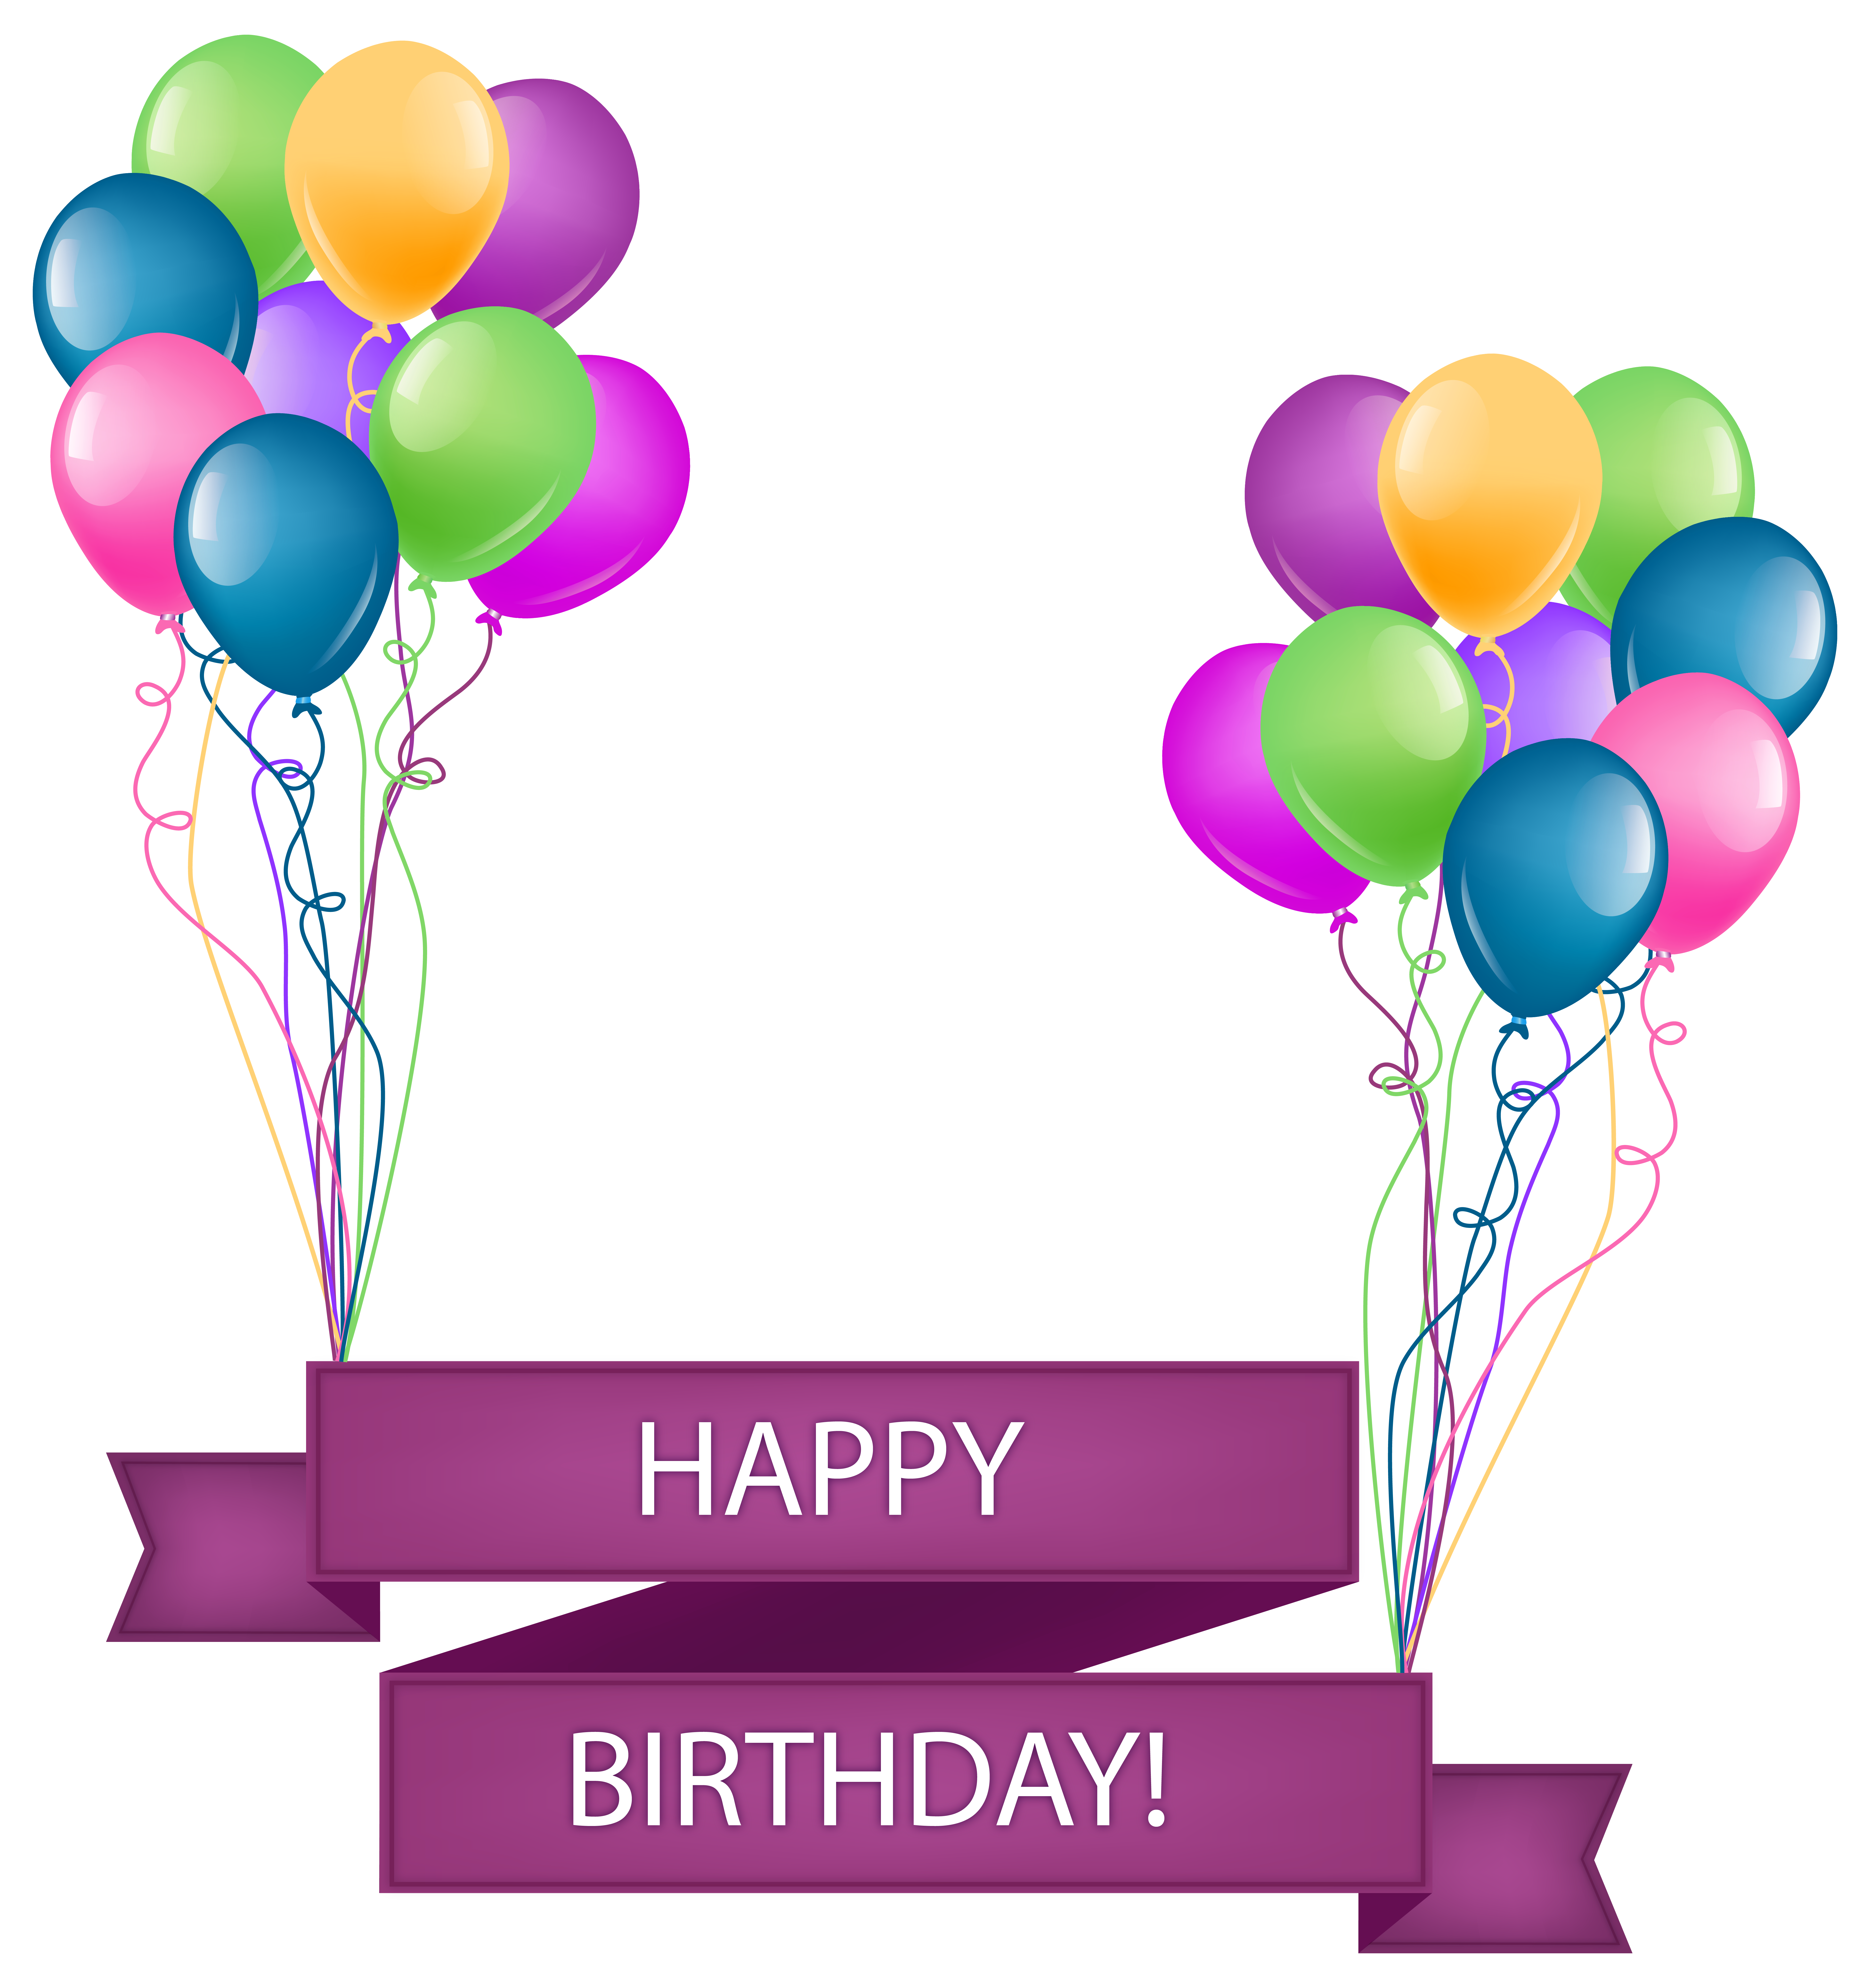 png royalty free stock Banner with balloons transparent. Free clipart happy birthday